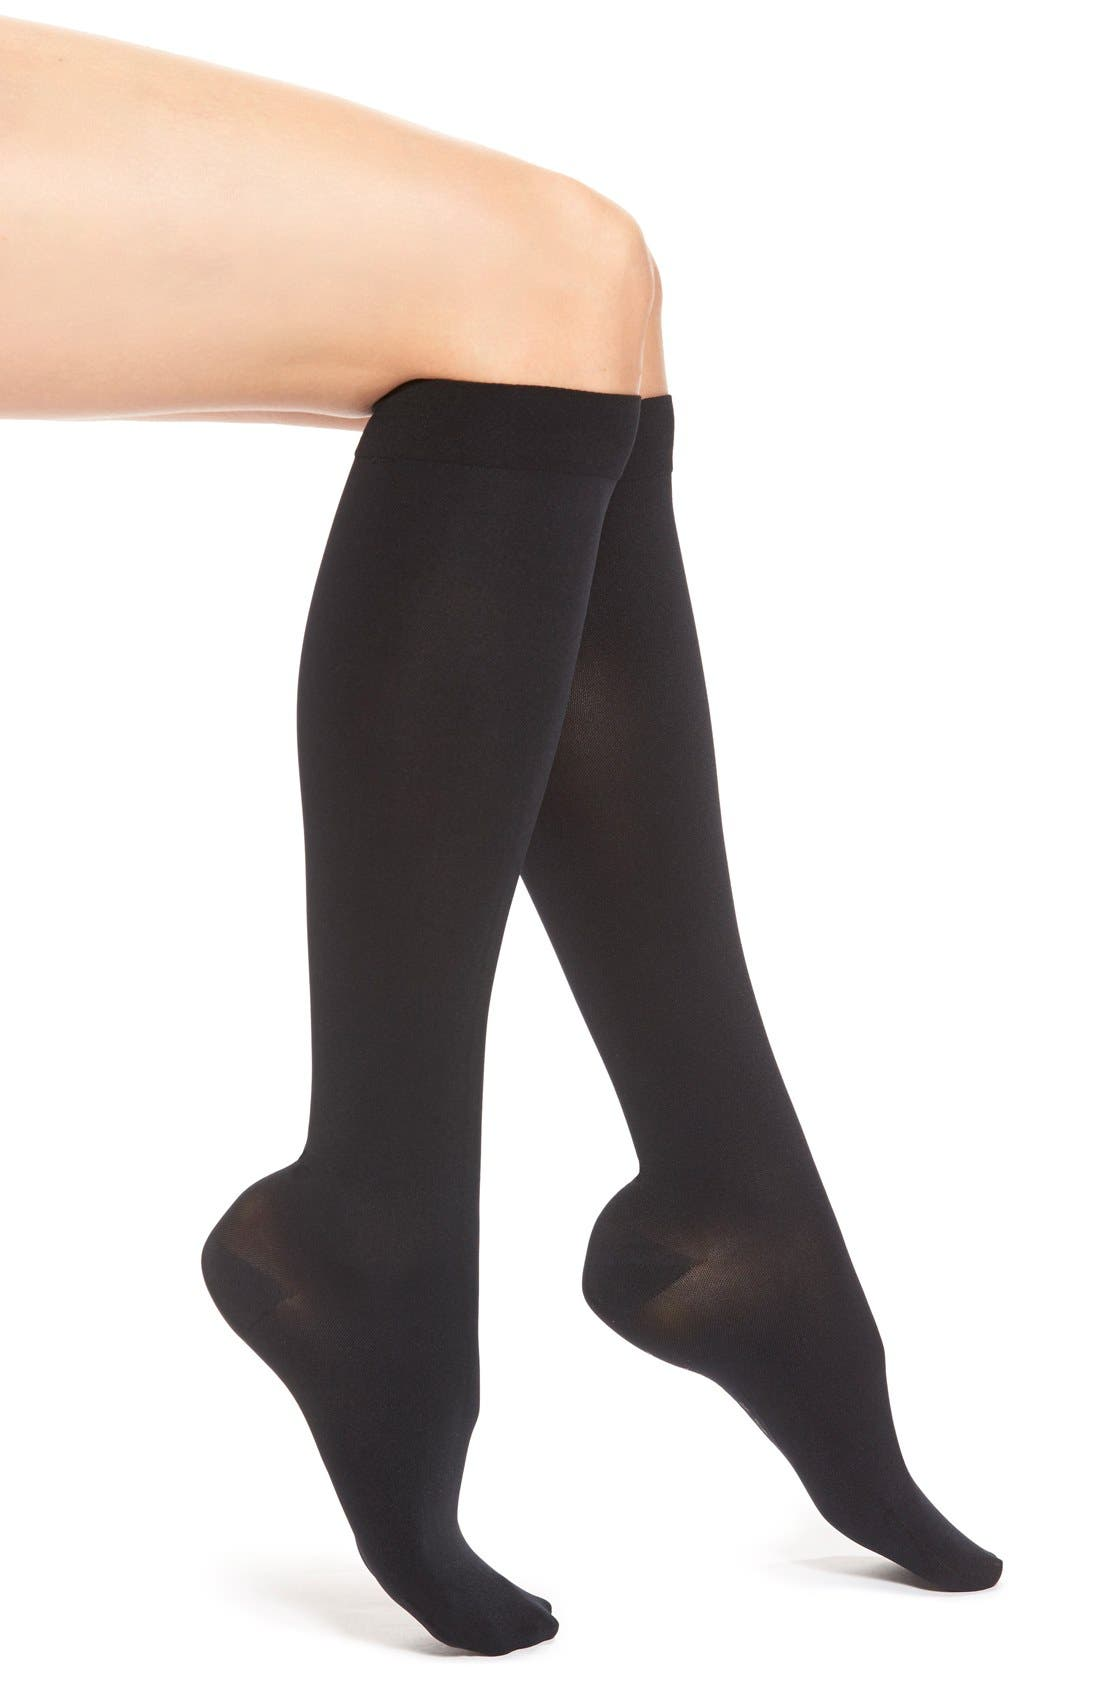 Opaque Compression Knee High Socks,                         Main,                         color, BLACK